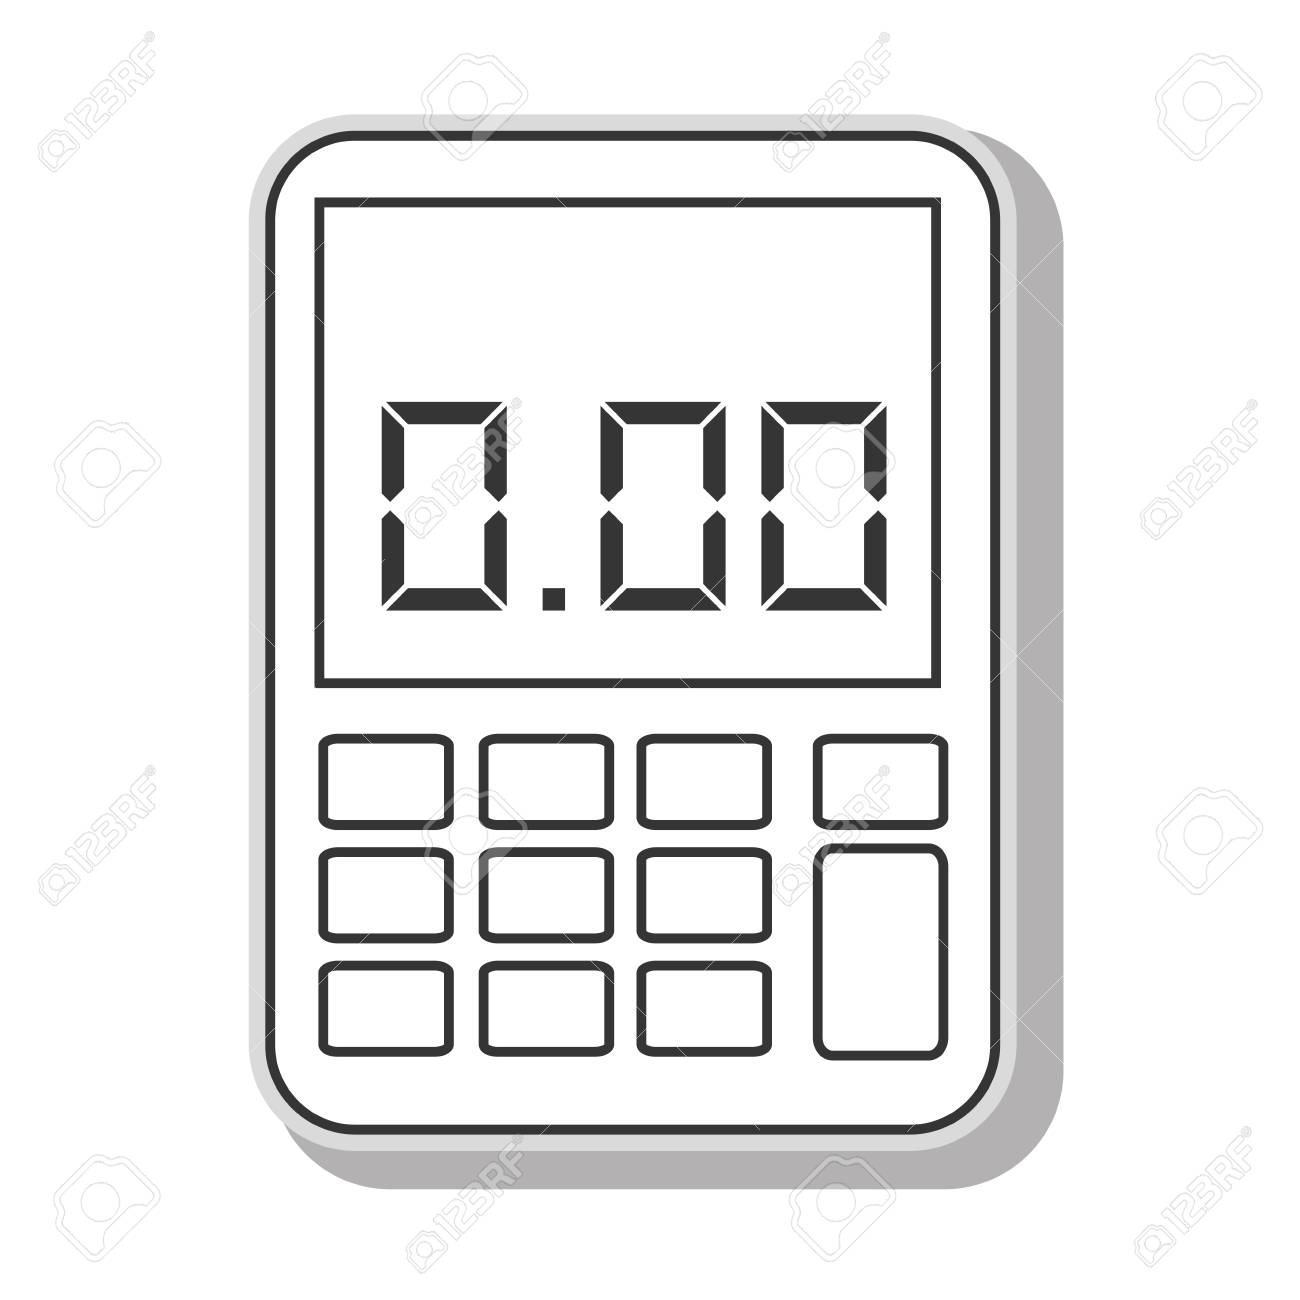 calculator math buttons in black and white colors, isolated flat